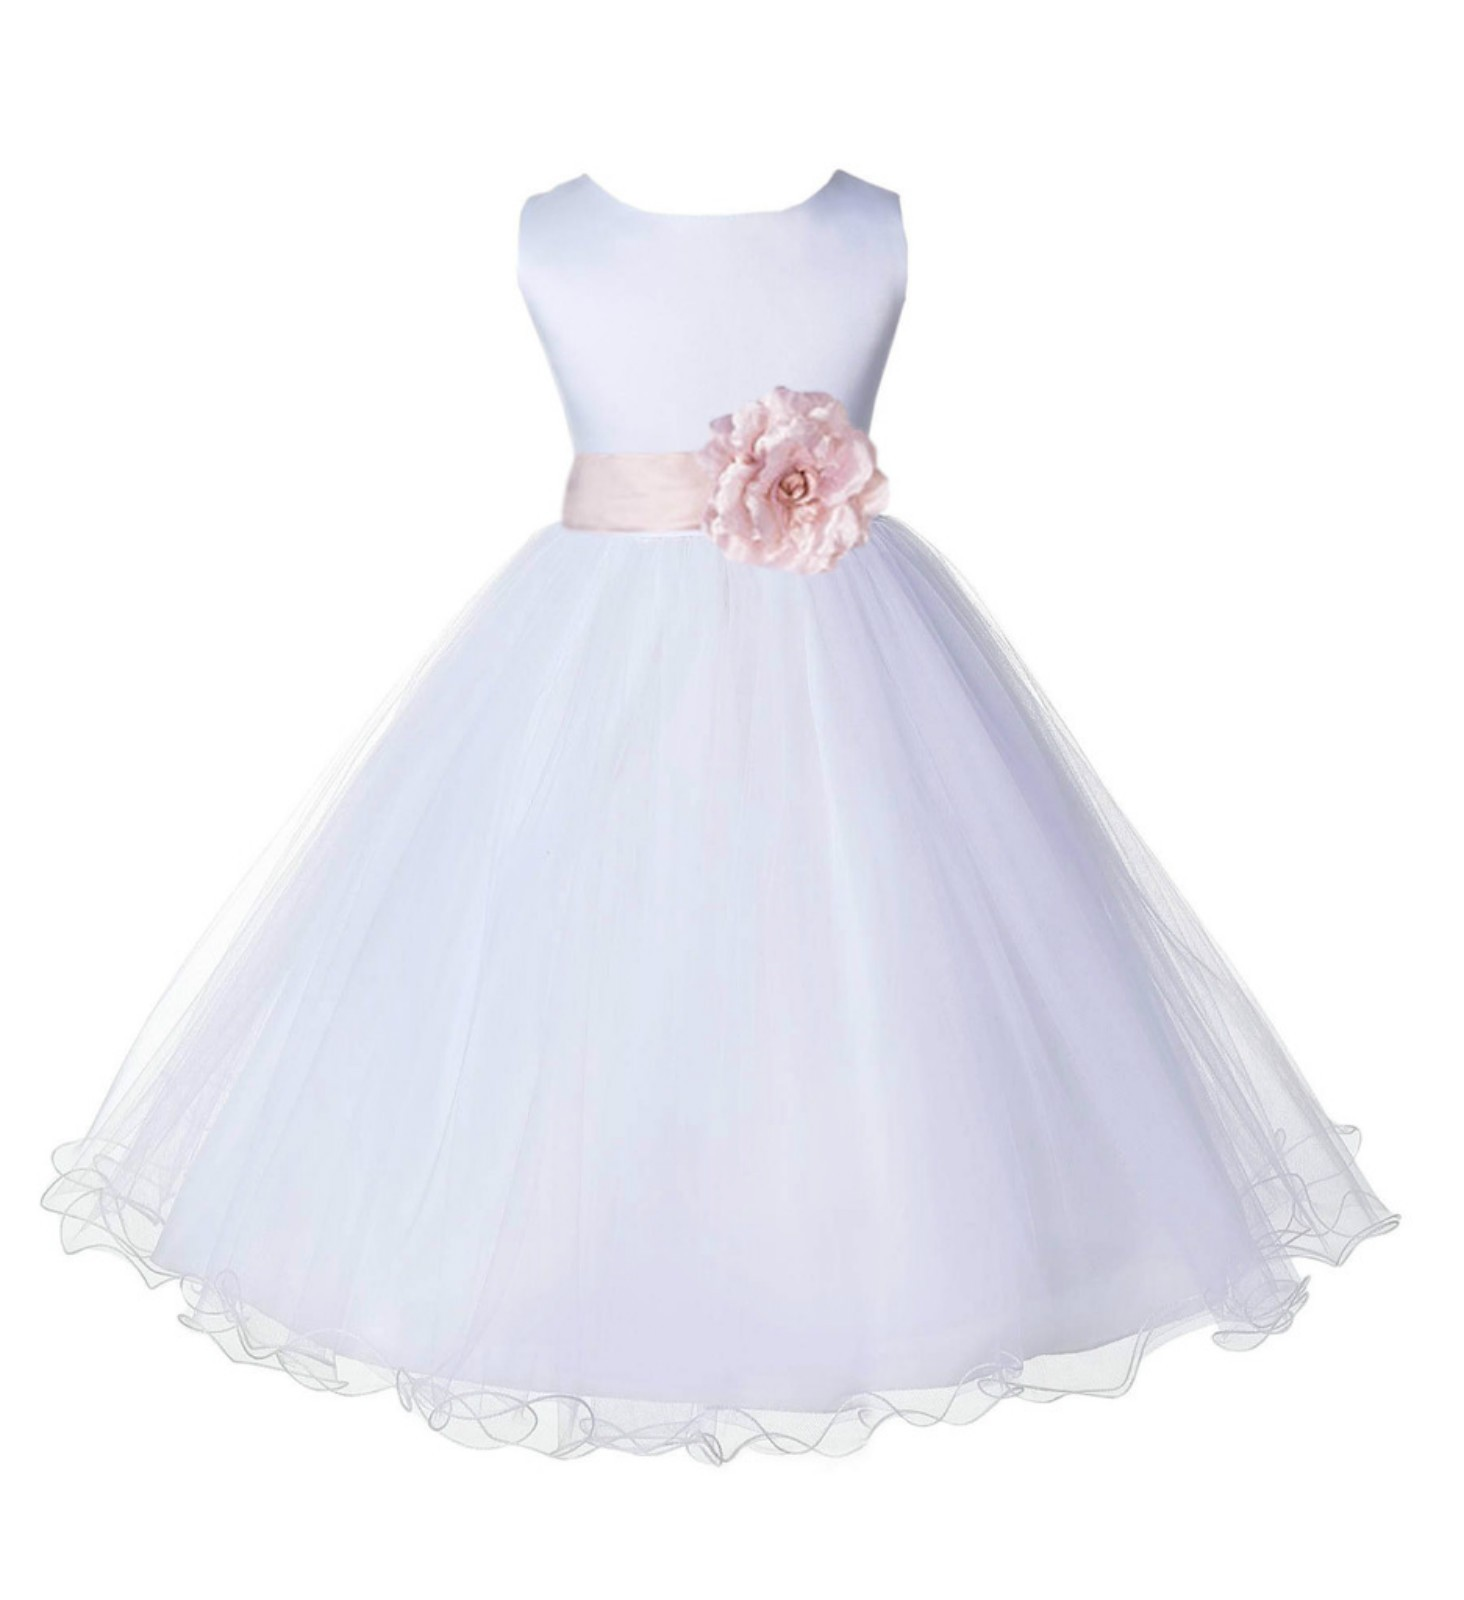 Fine Pink And White Flower Girl Dresses Pictures Images For